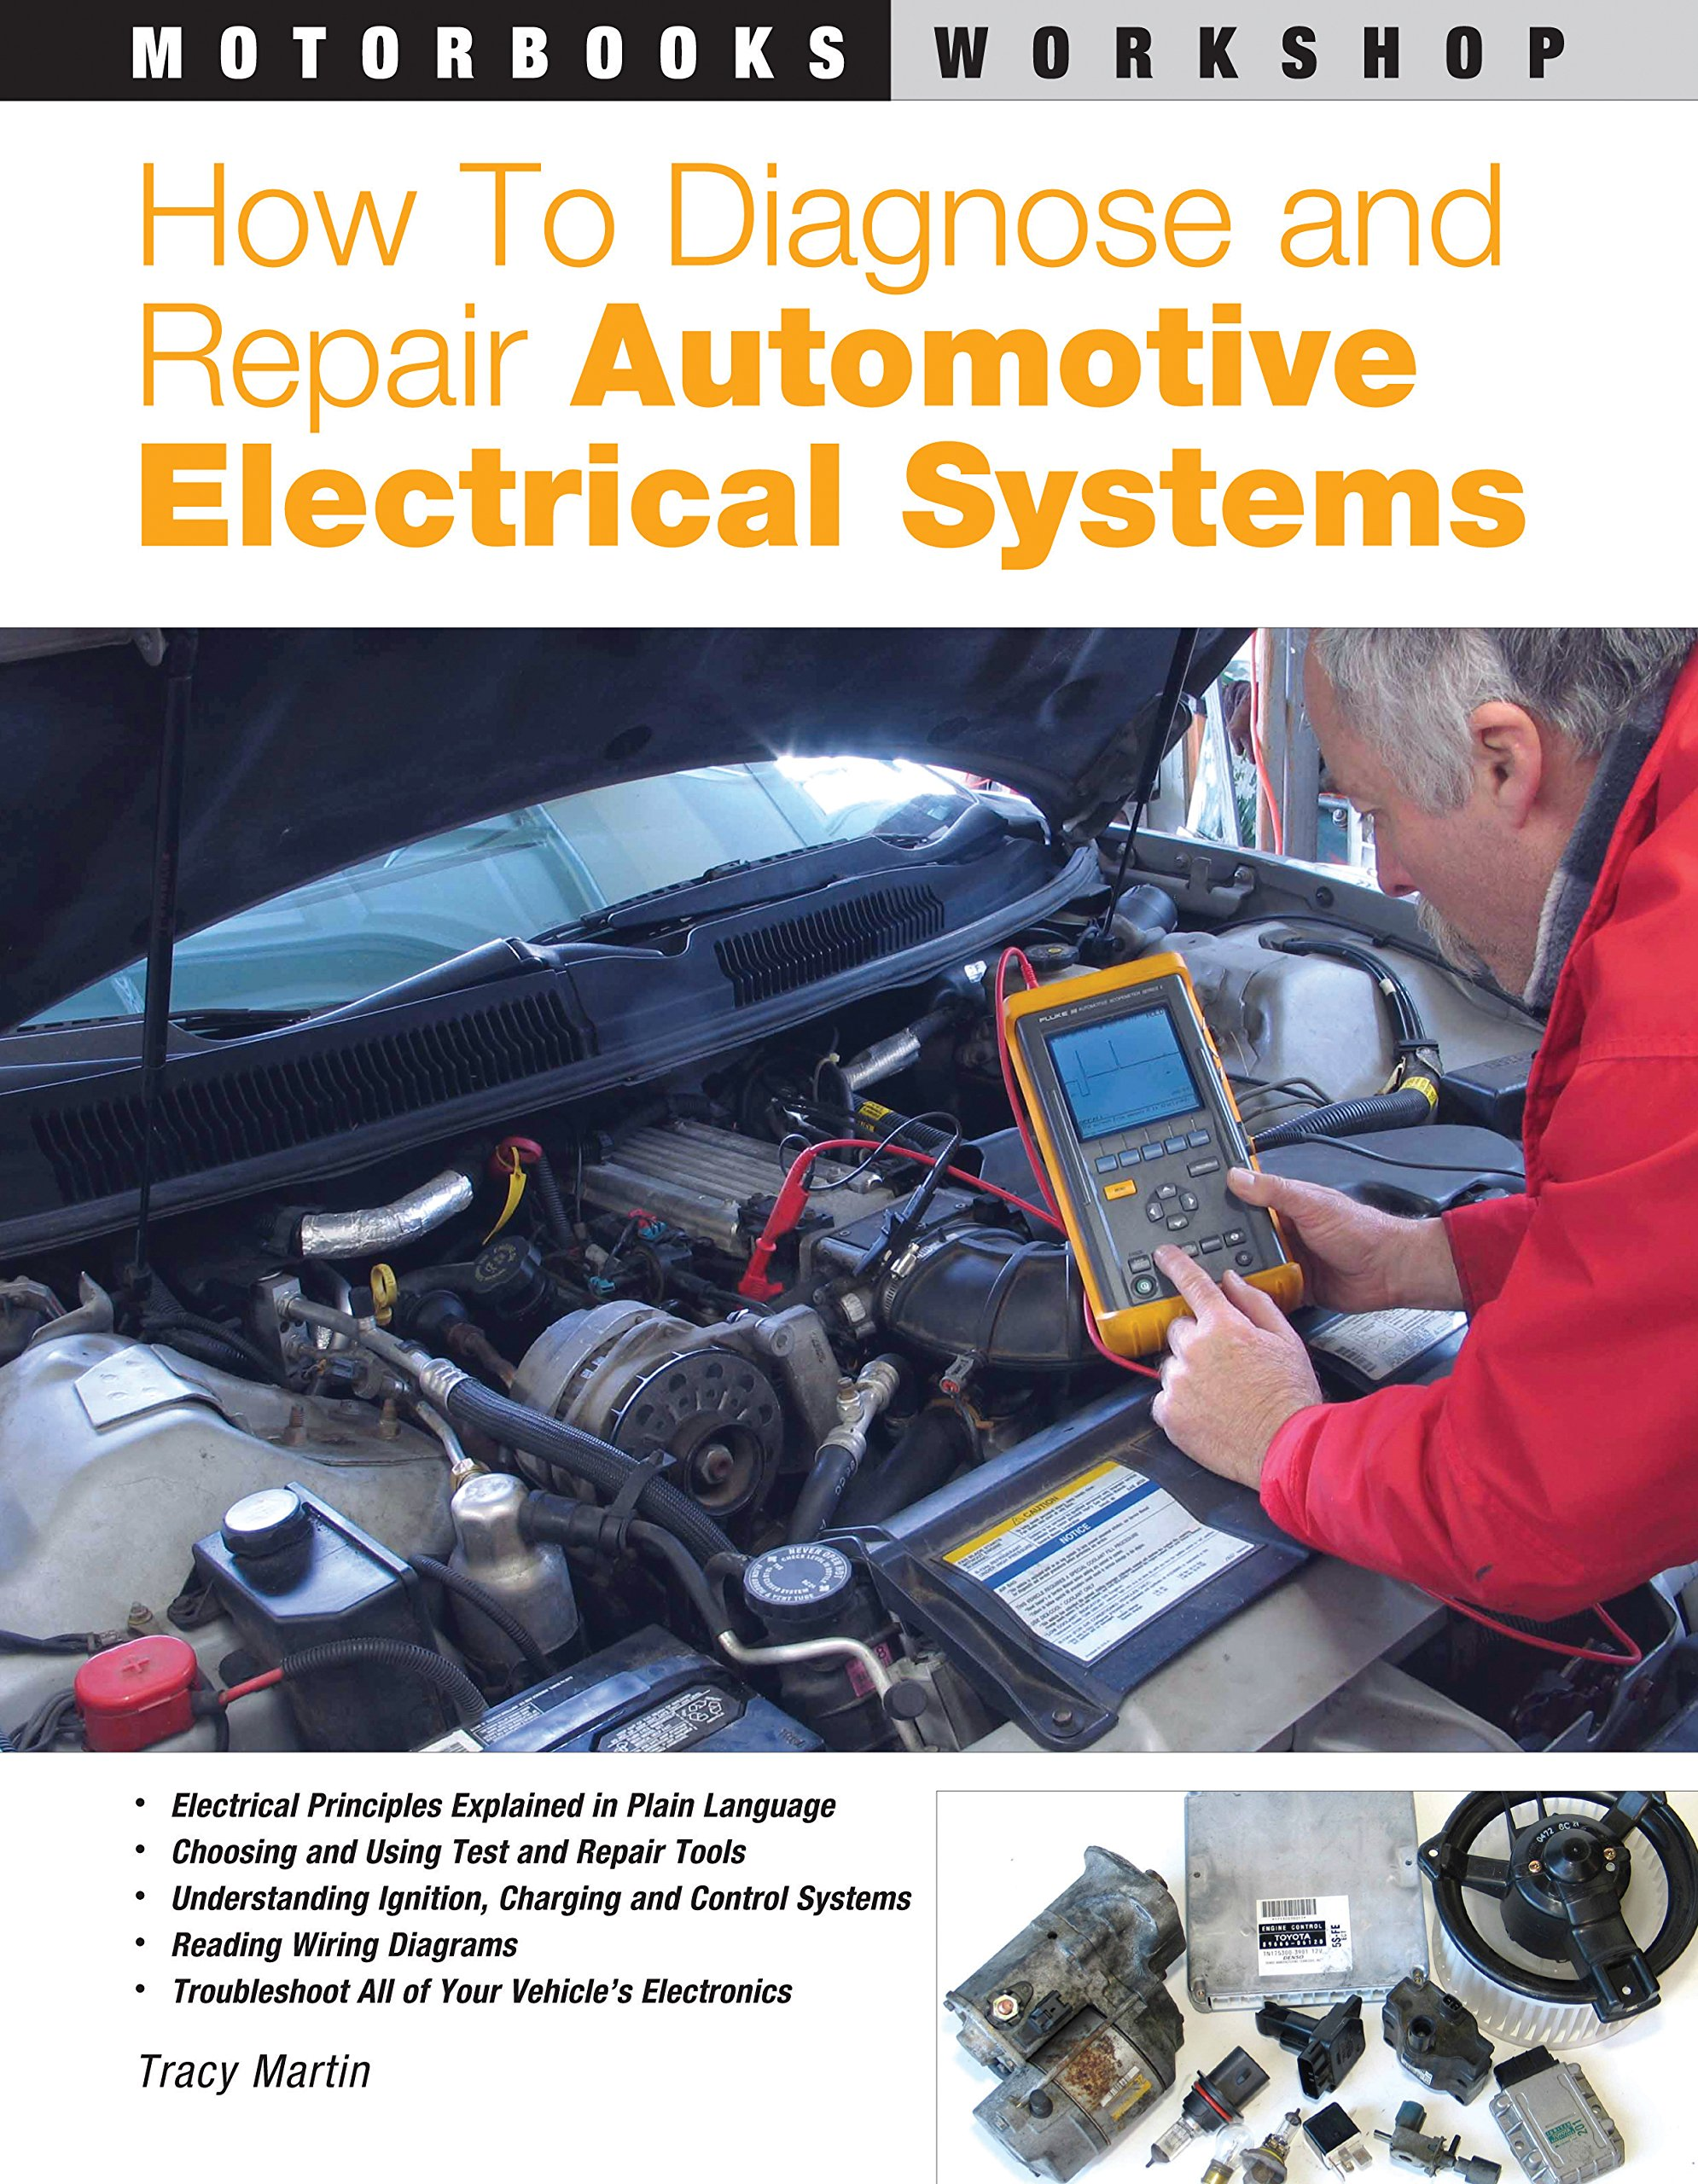 Understanding Control Wiring How To Diagnose And Repair Automotive Electrical Systems Motorbooks Workshop Tracy Martin 8601404402180 Books